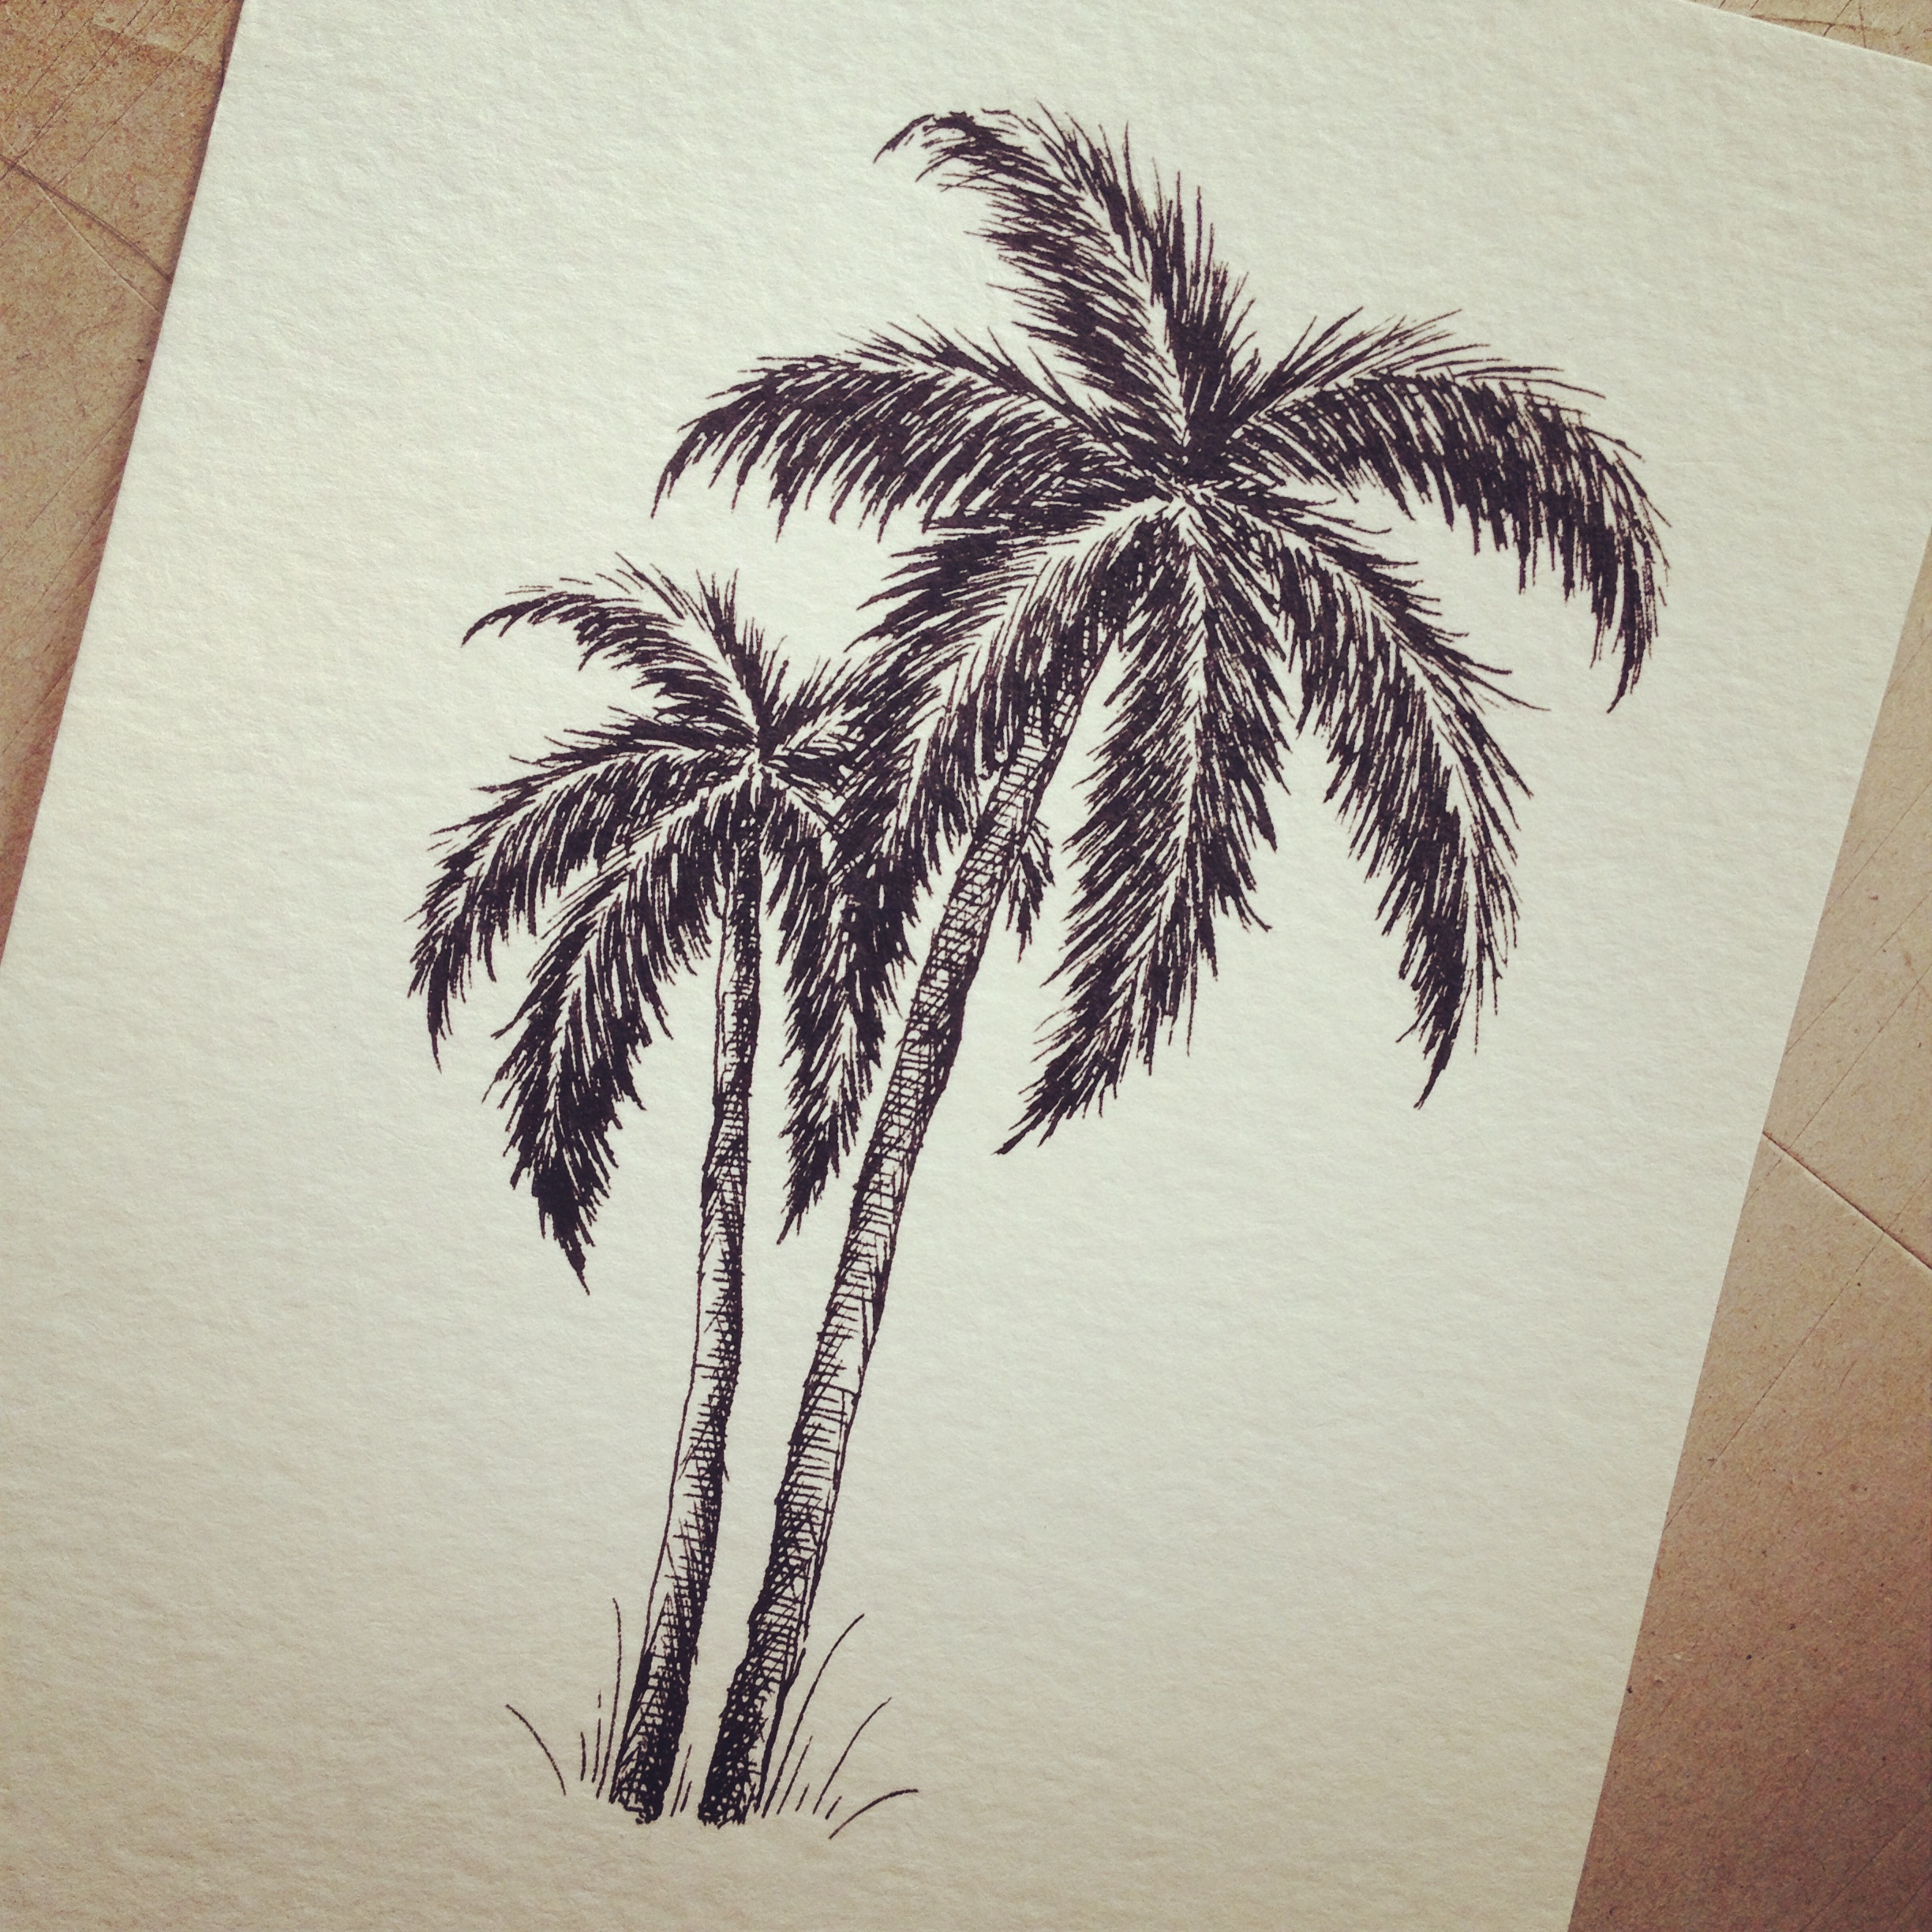 Drawn palm tree pen and ink #11